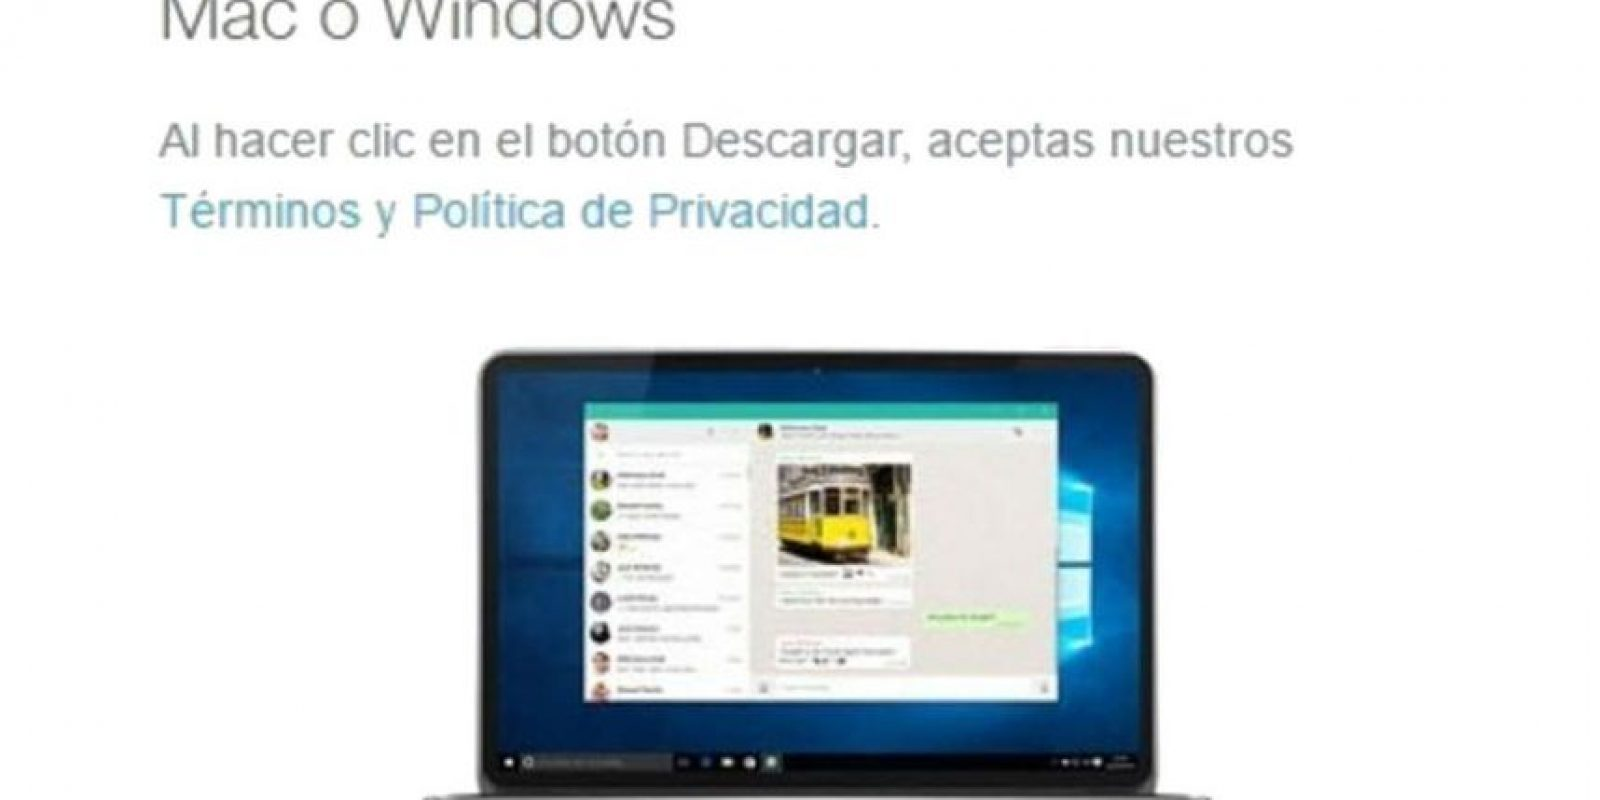 Está disponible para OS 10.9 en adelante y Windows 8 en adelante. Foto: WhatsApp